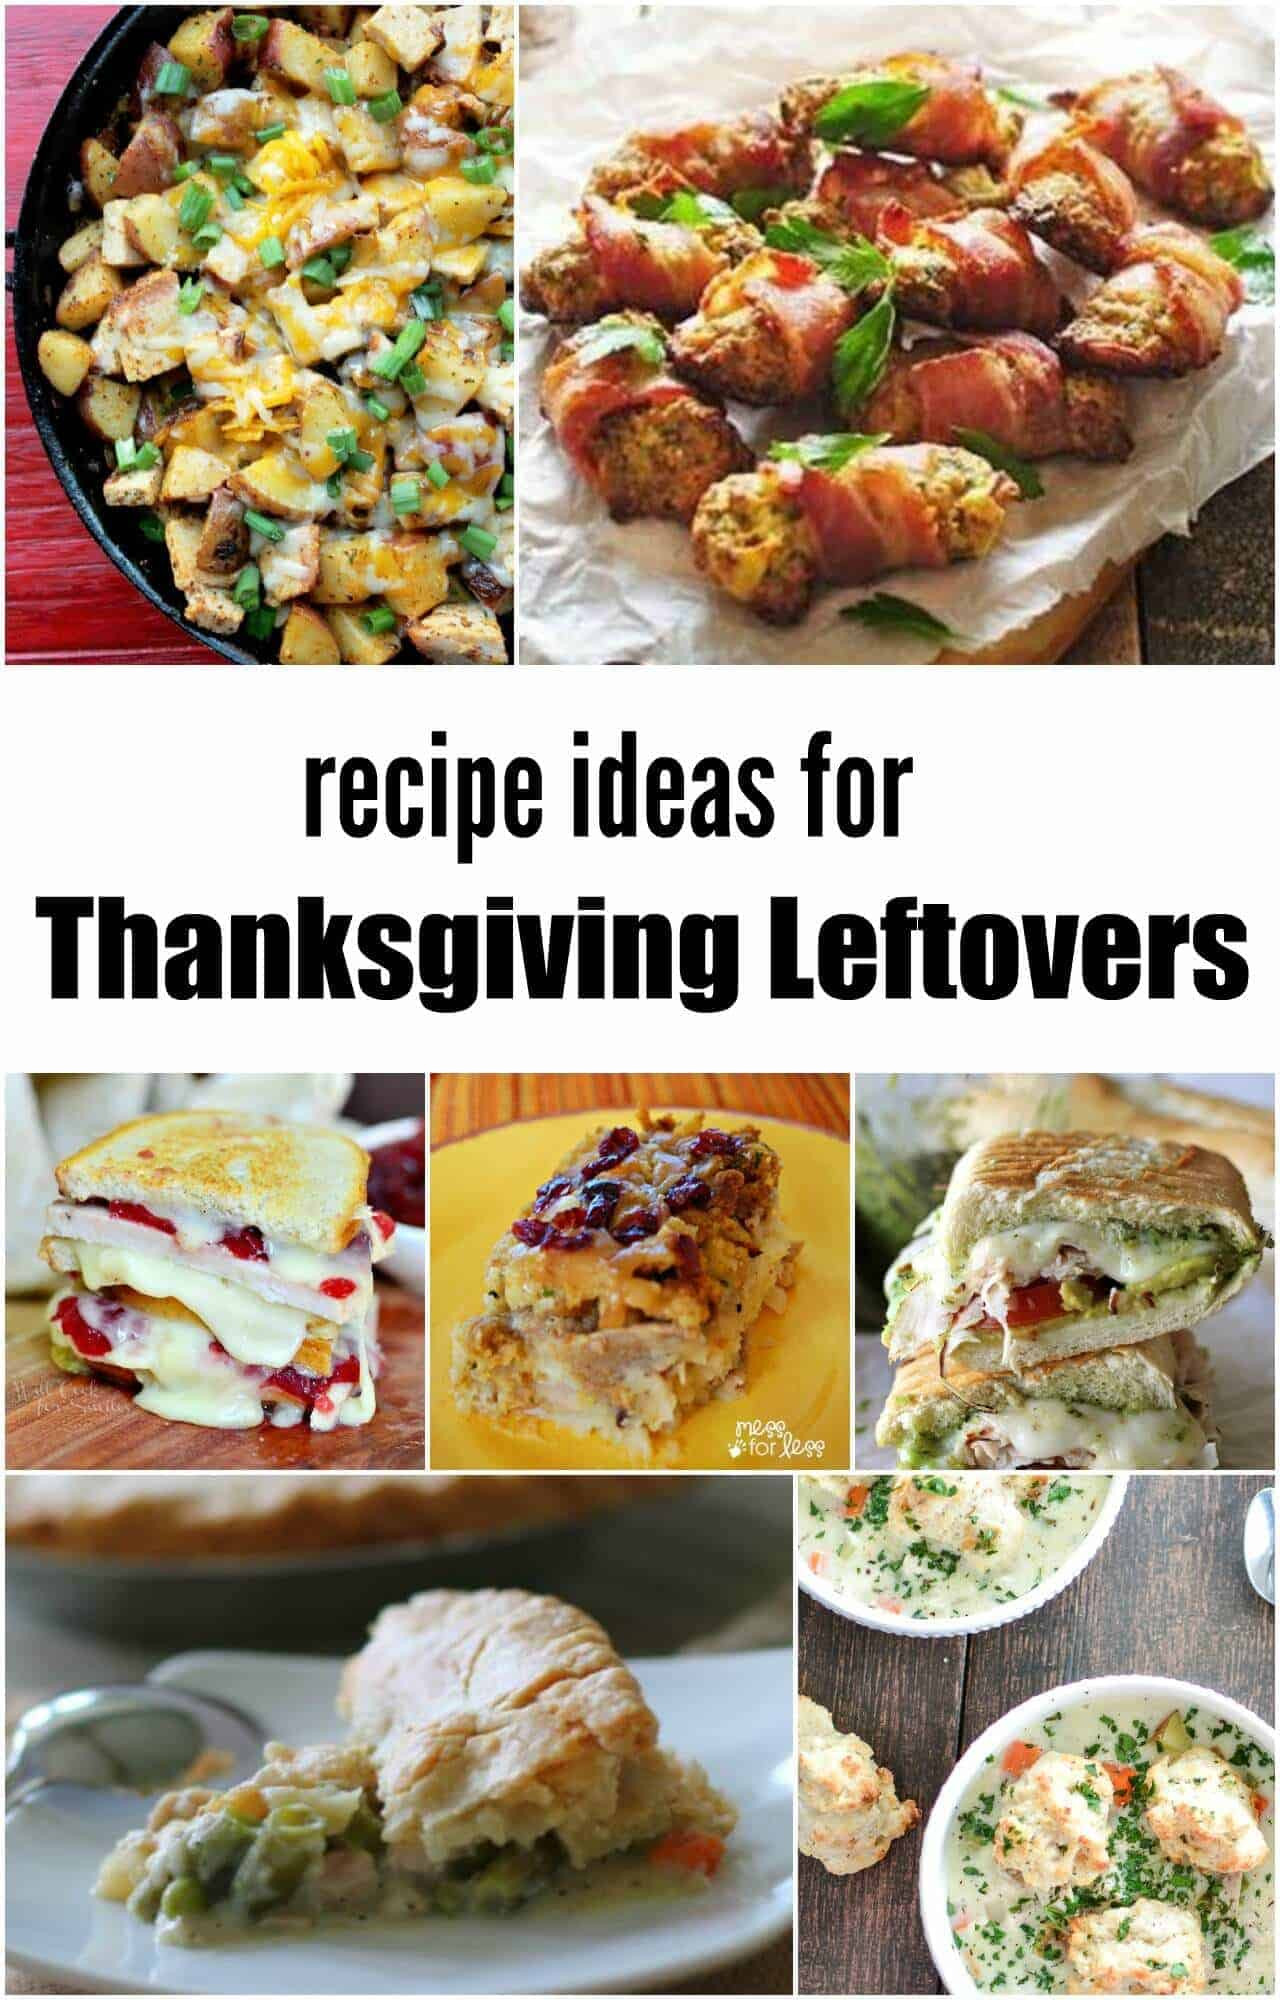 Thanksgiving Leftovers Recipes  Ideas and Recipes for Thanksgiving Leftovers Princess